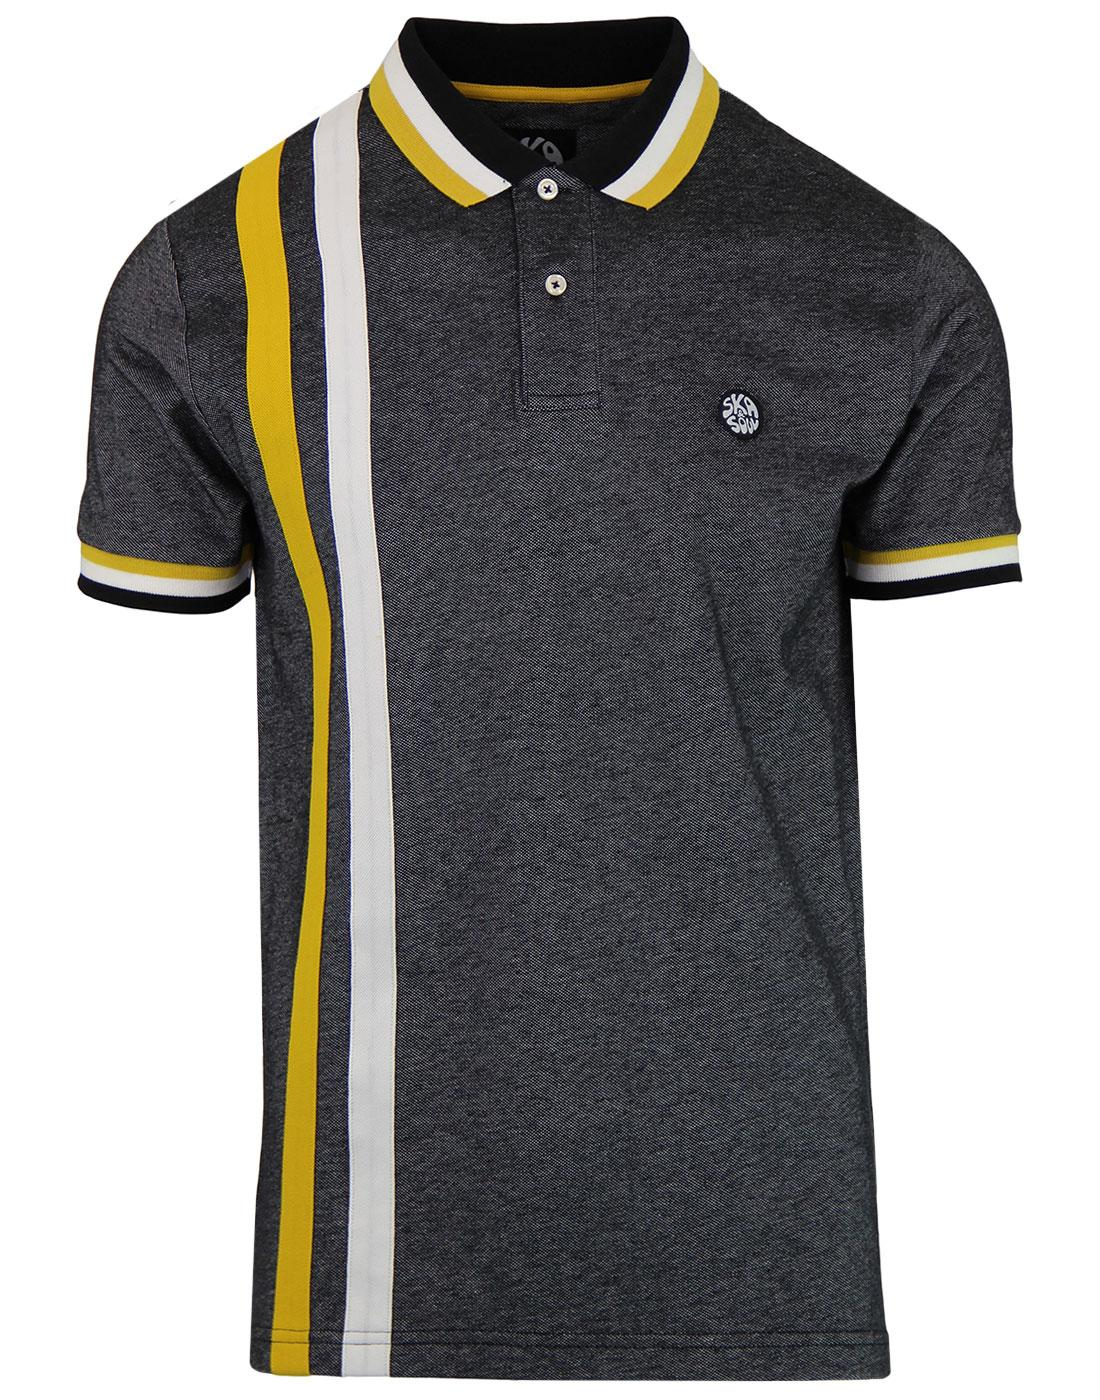 SKA & SOUL Mod Racing Stripe Oxford Polo Top BLACK